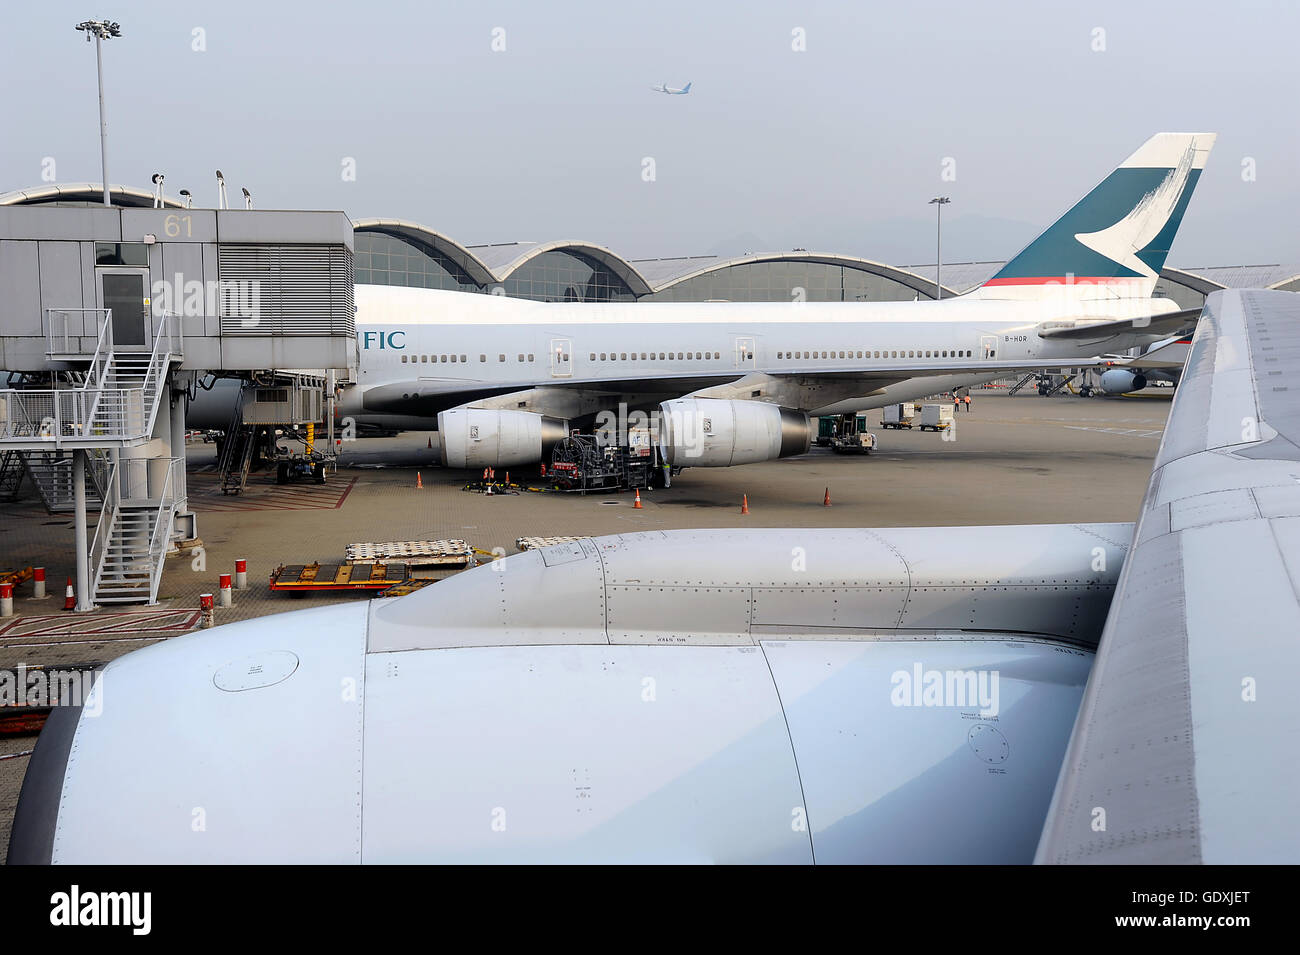 Hong Kong International Airport - Stock Image